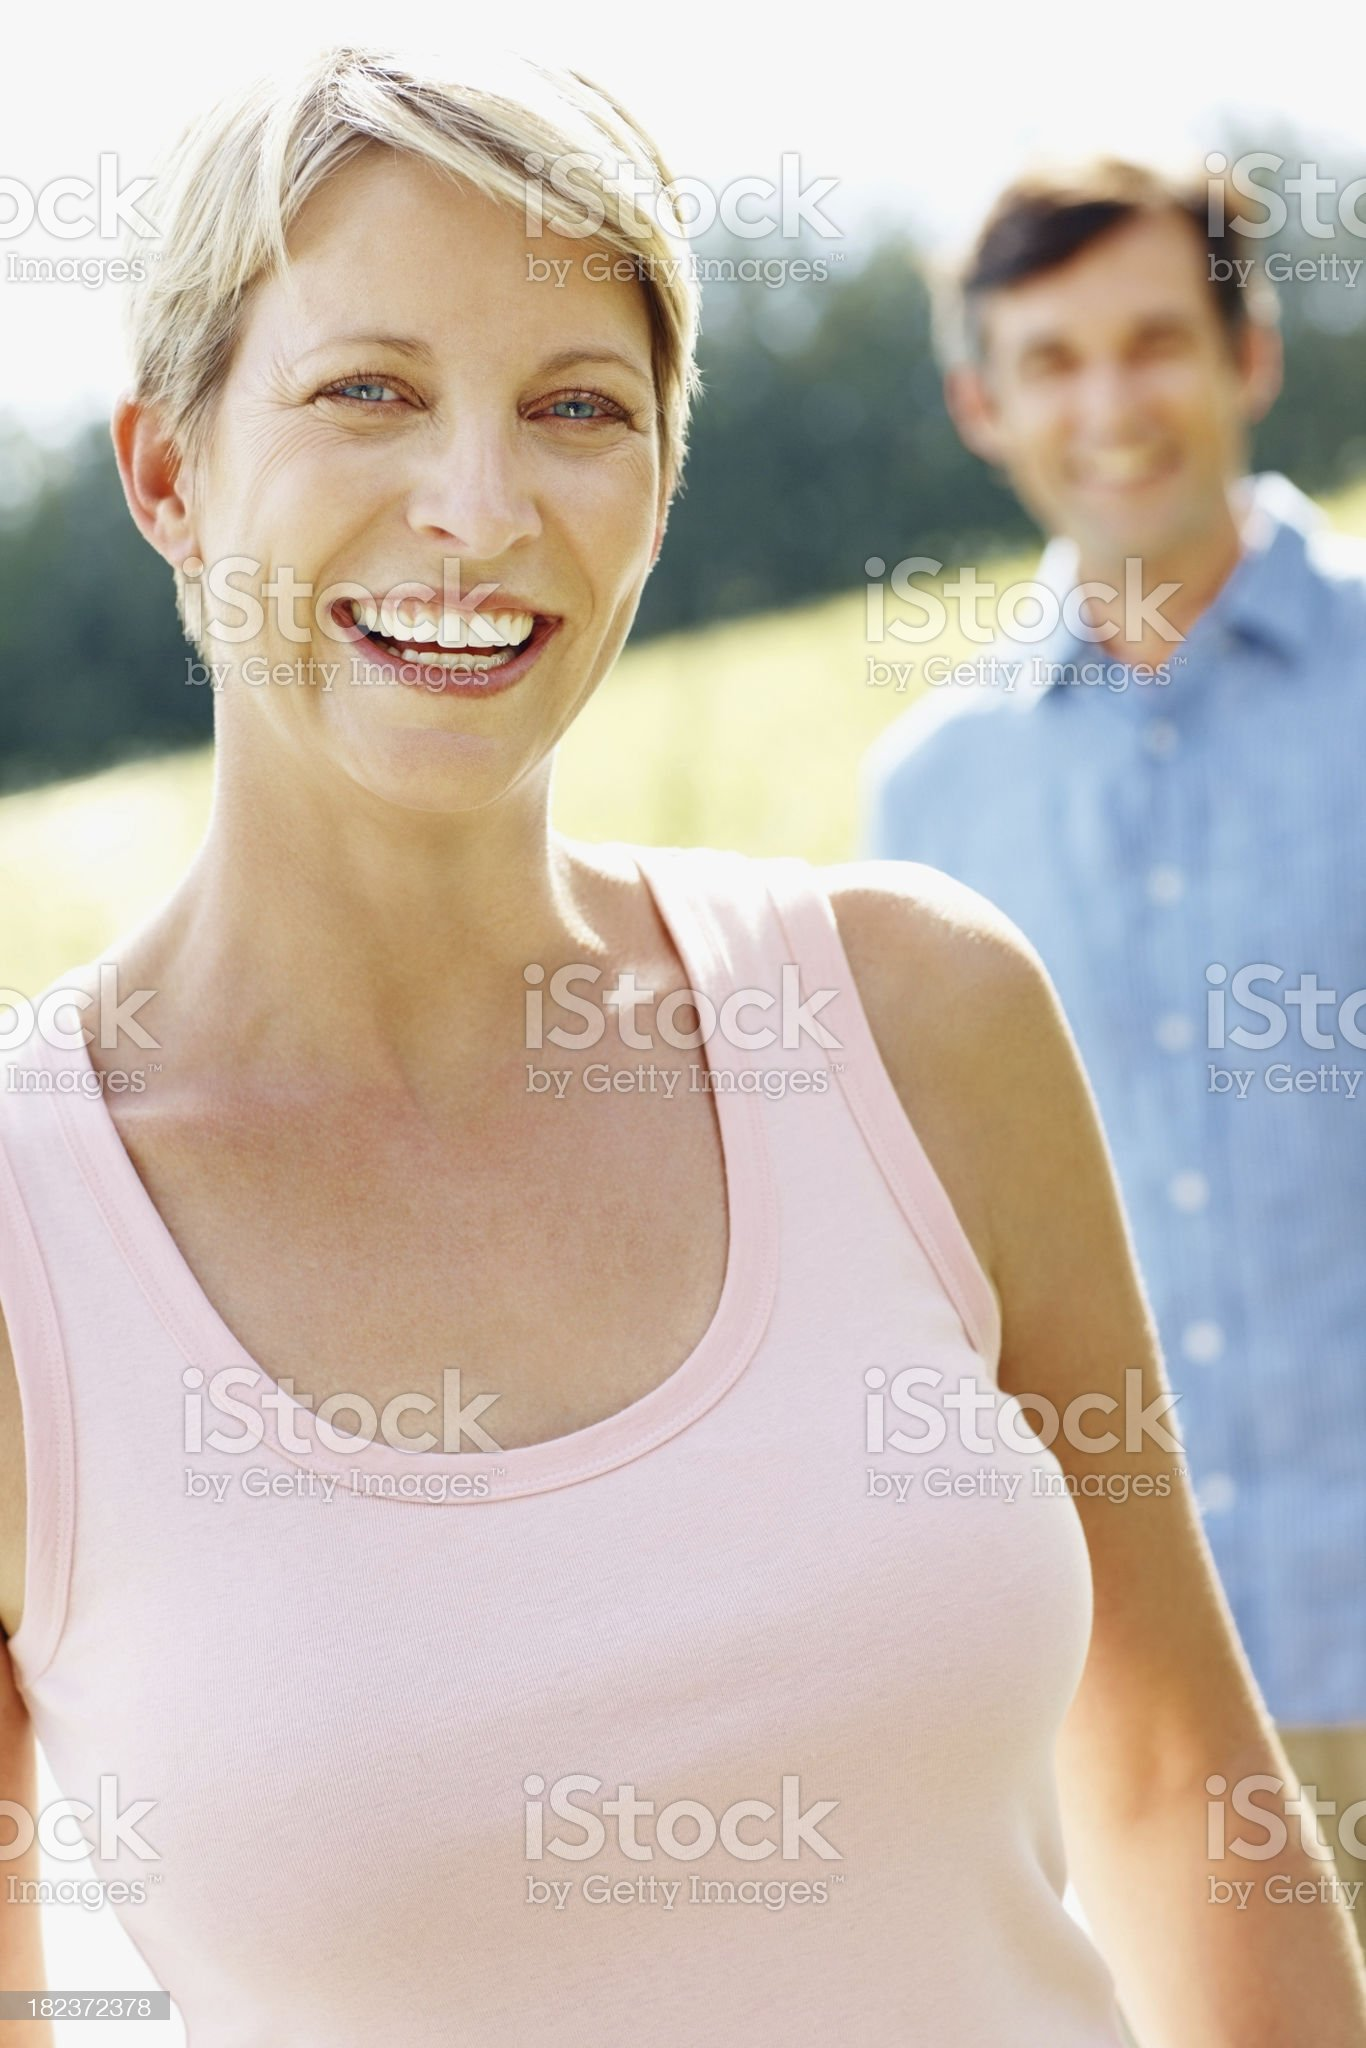 Portrait of a woman smiling with husband at the back royalty-free stock photo